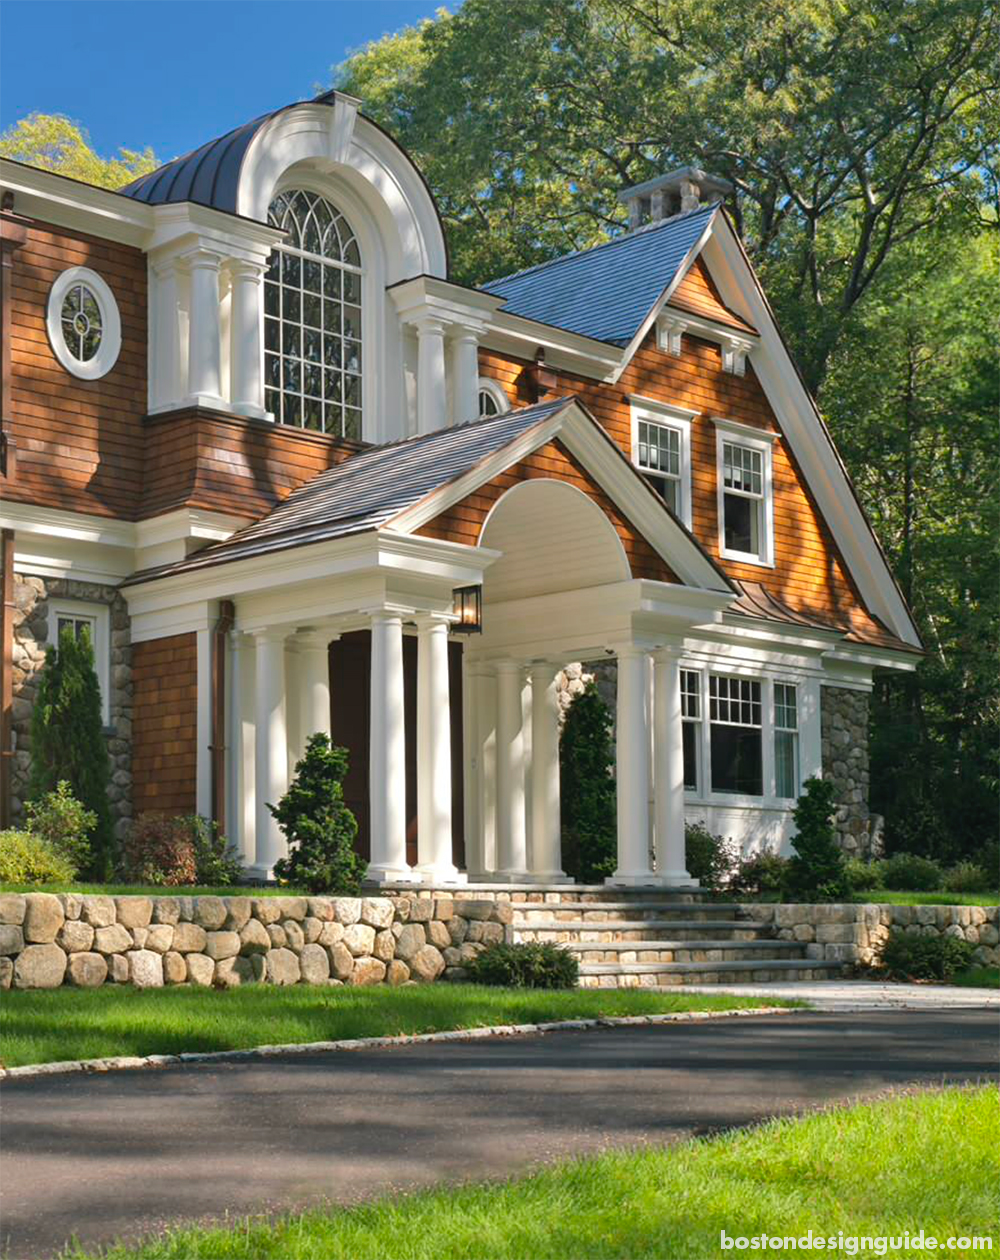 high end home architecture in New England